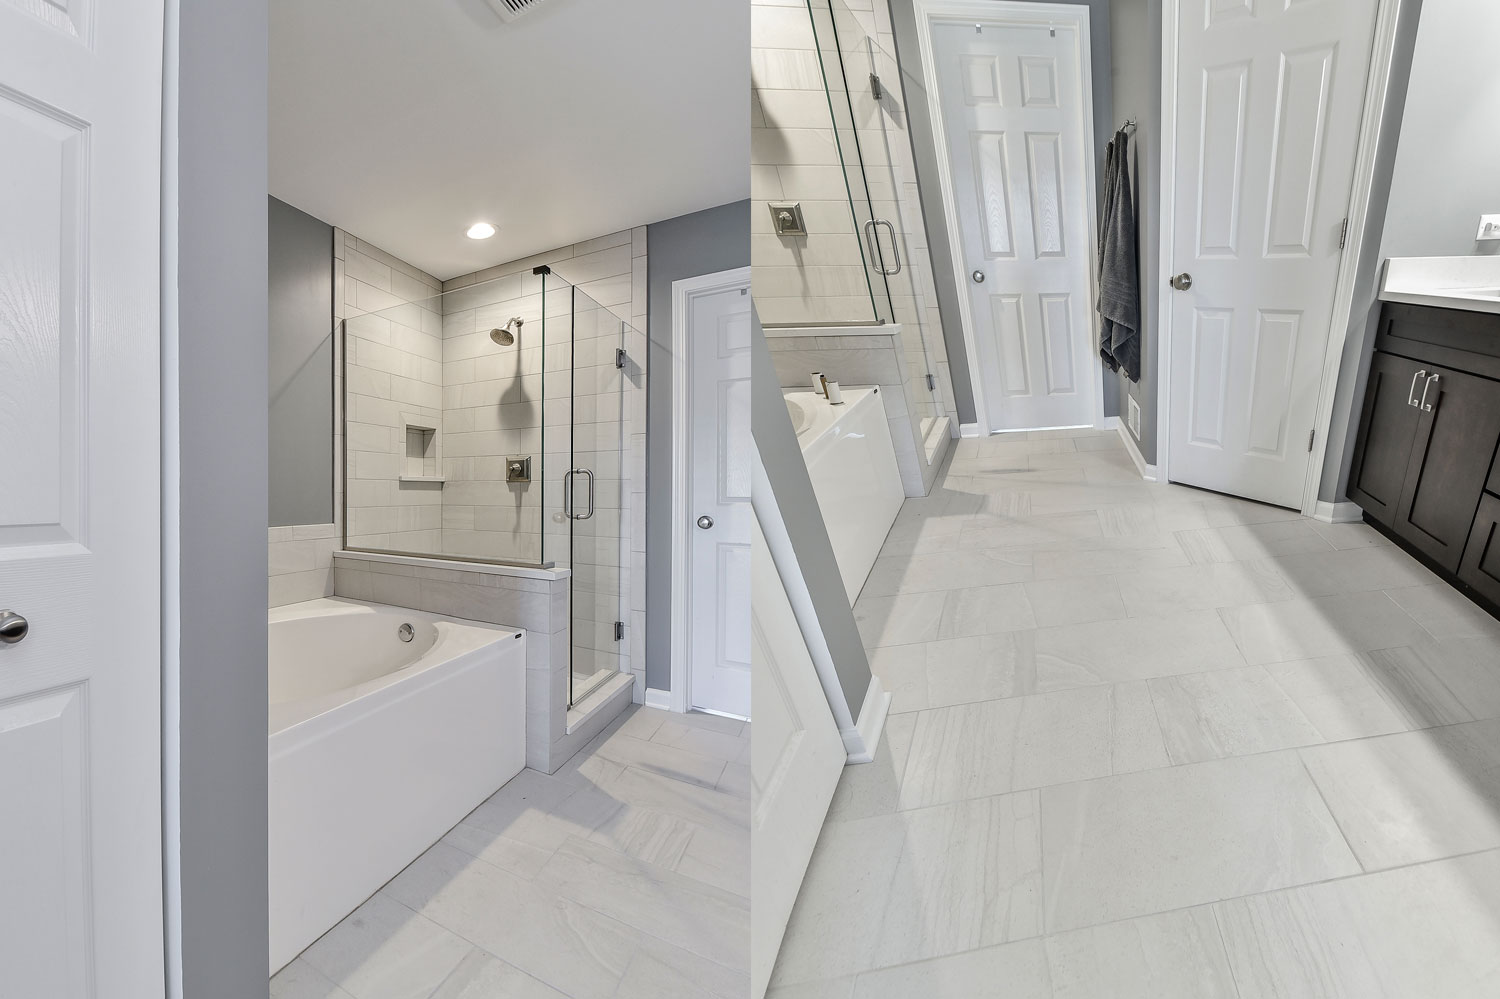 Pete mary 39 s master bathroom remodel pictures home for Master bath remodel 2017